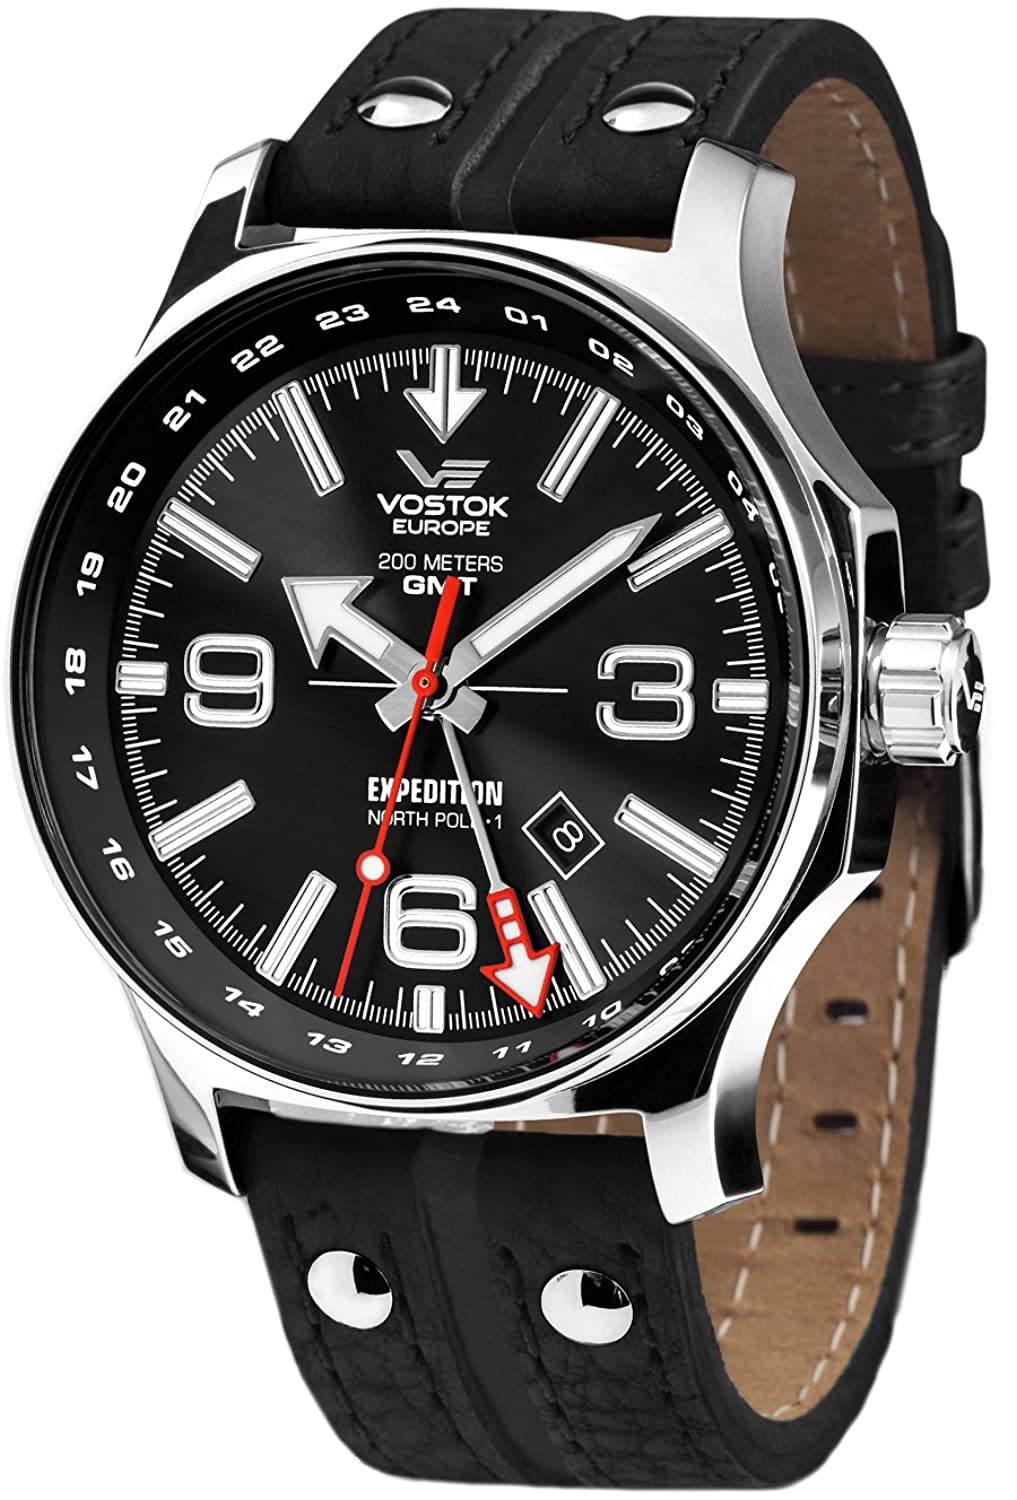 Vostok Europe Expedition North Pole Herr uhren 515.24H-595A500